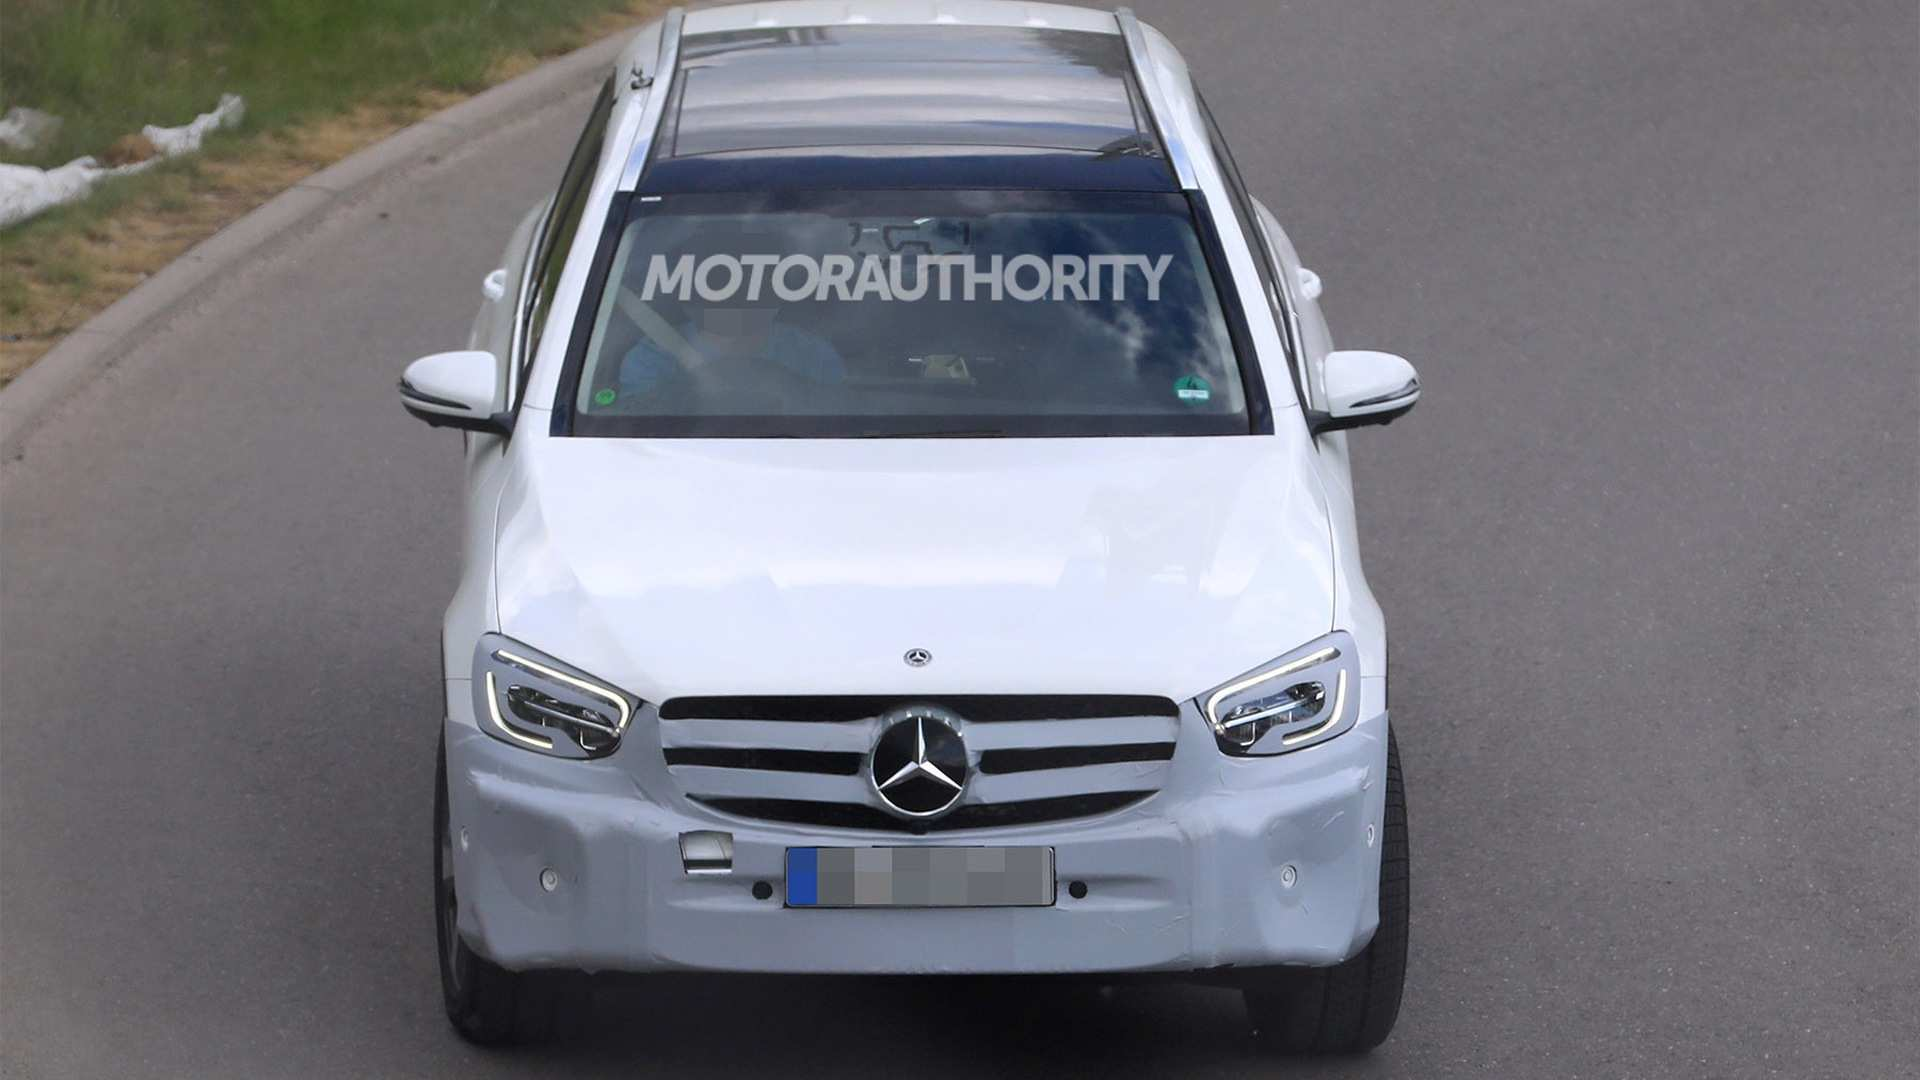 39 Gallery of 2020 Mercedes Glc 2020 Picture with 2020 Mercedes Glc 2020